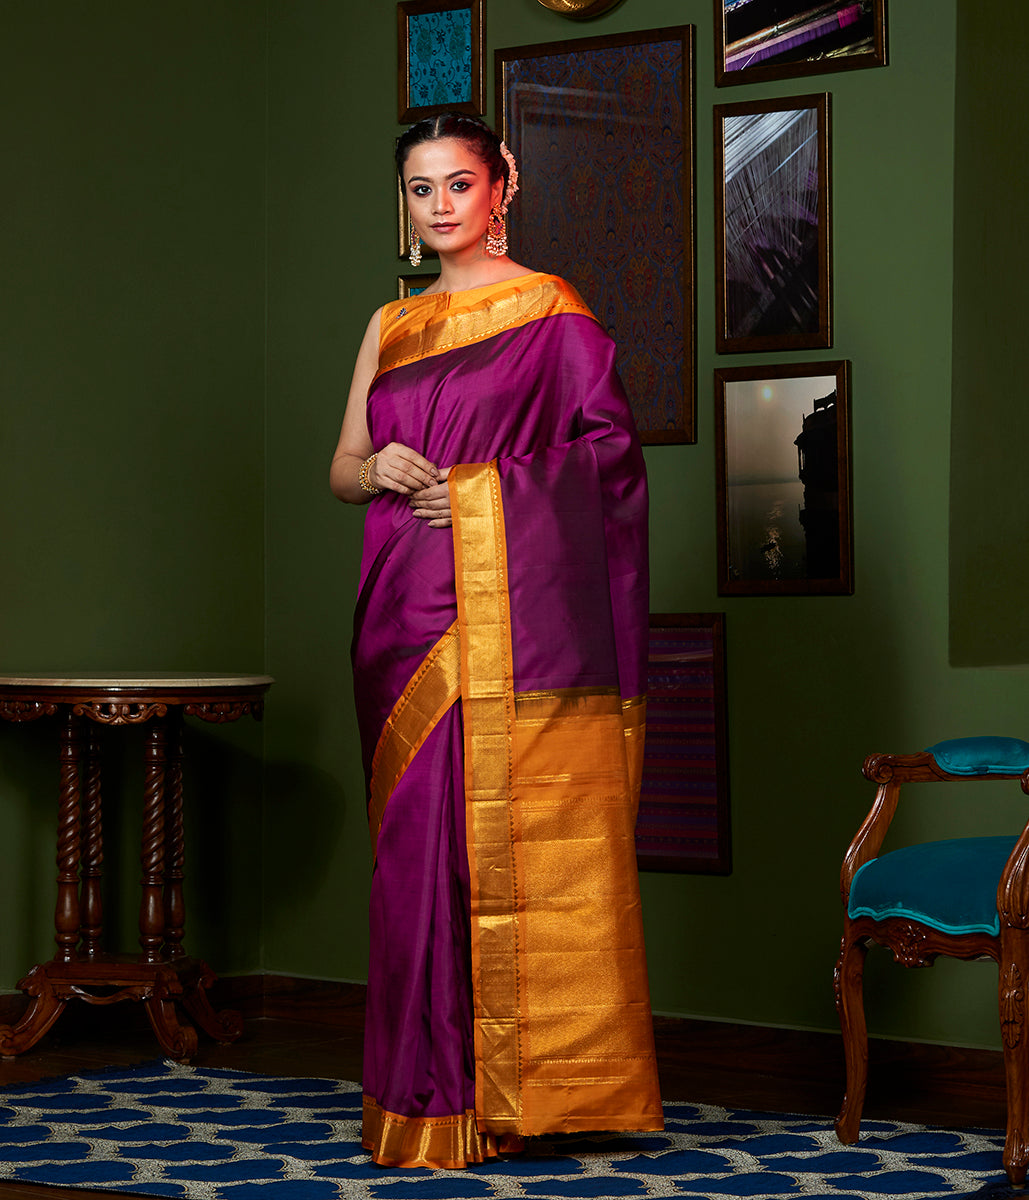 Handwoven Purple and Orange Kanjivaram Silk Saree with Gold Zari Border